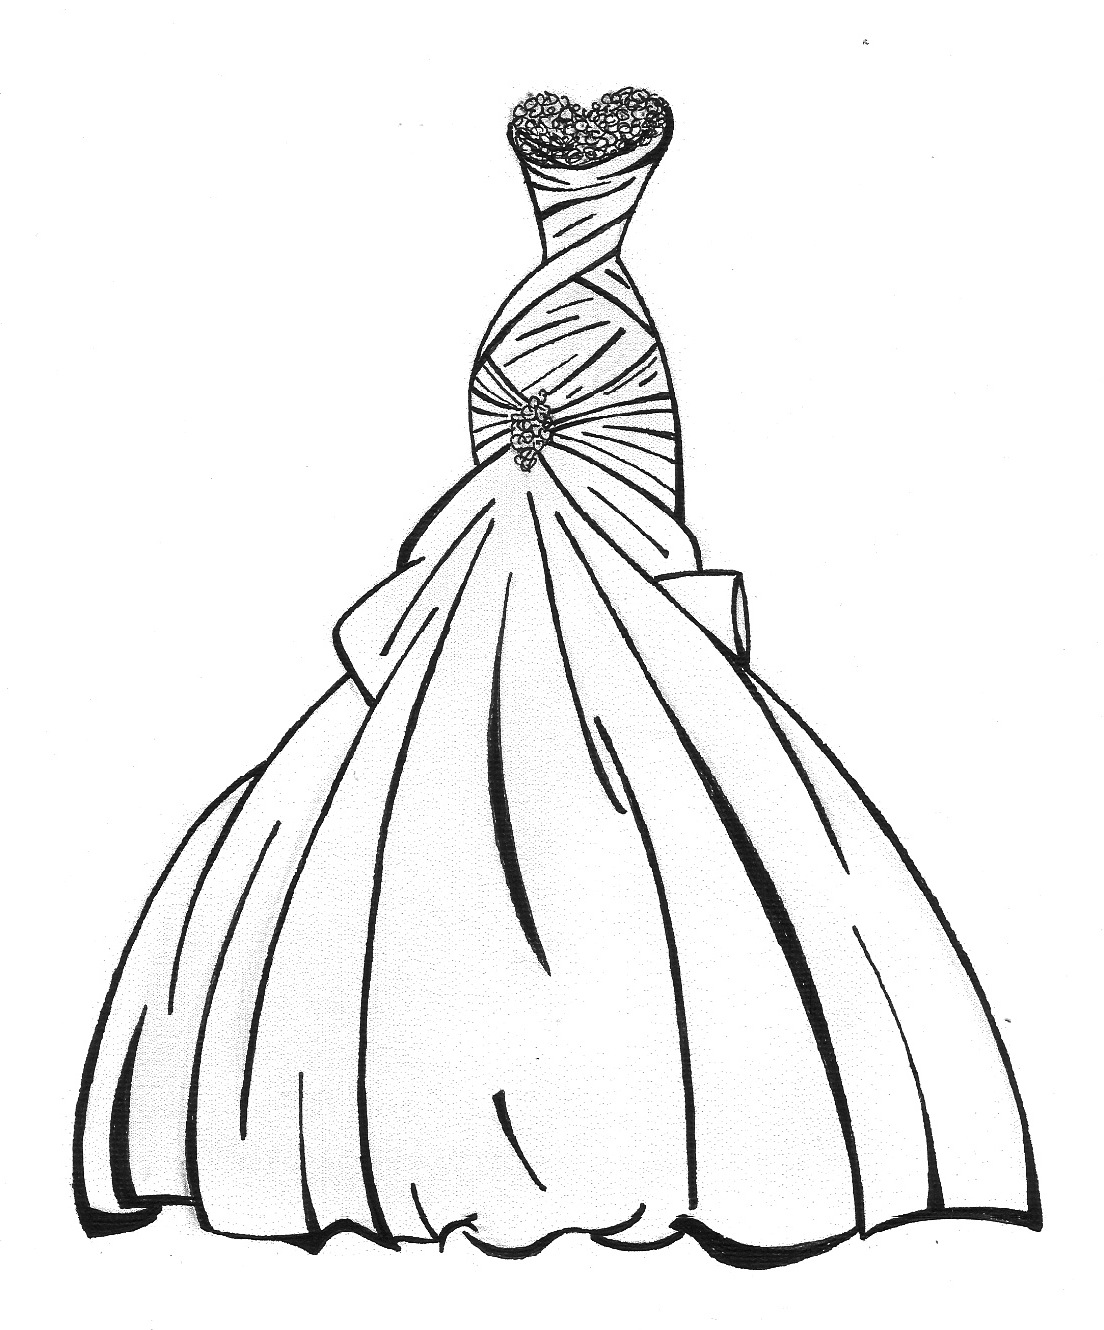 colouring pages dresses fashion tips blog free fashion coloring pages pages colouring dresses